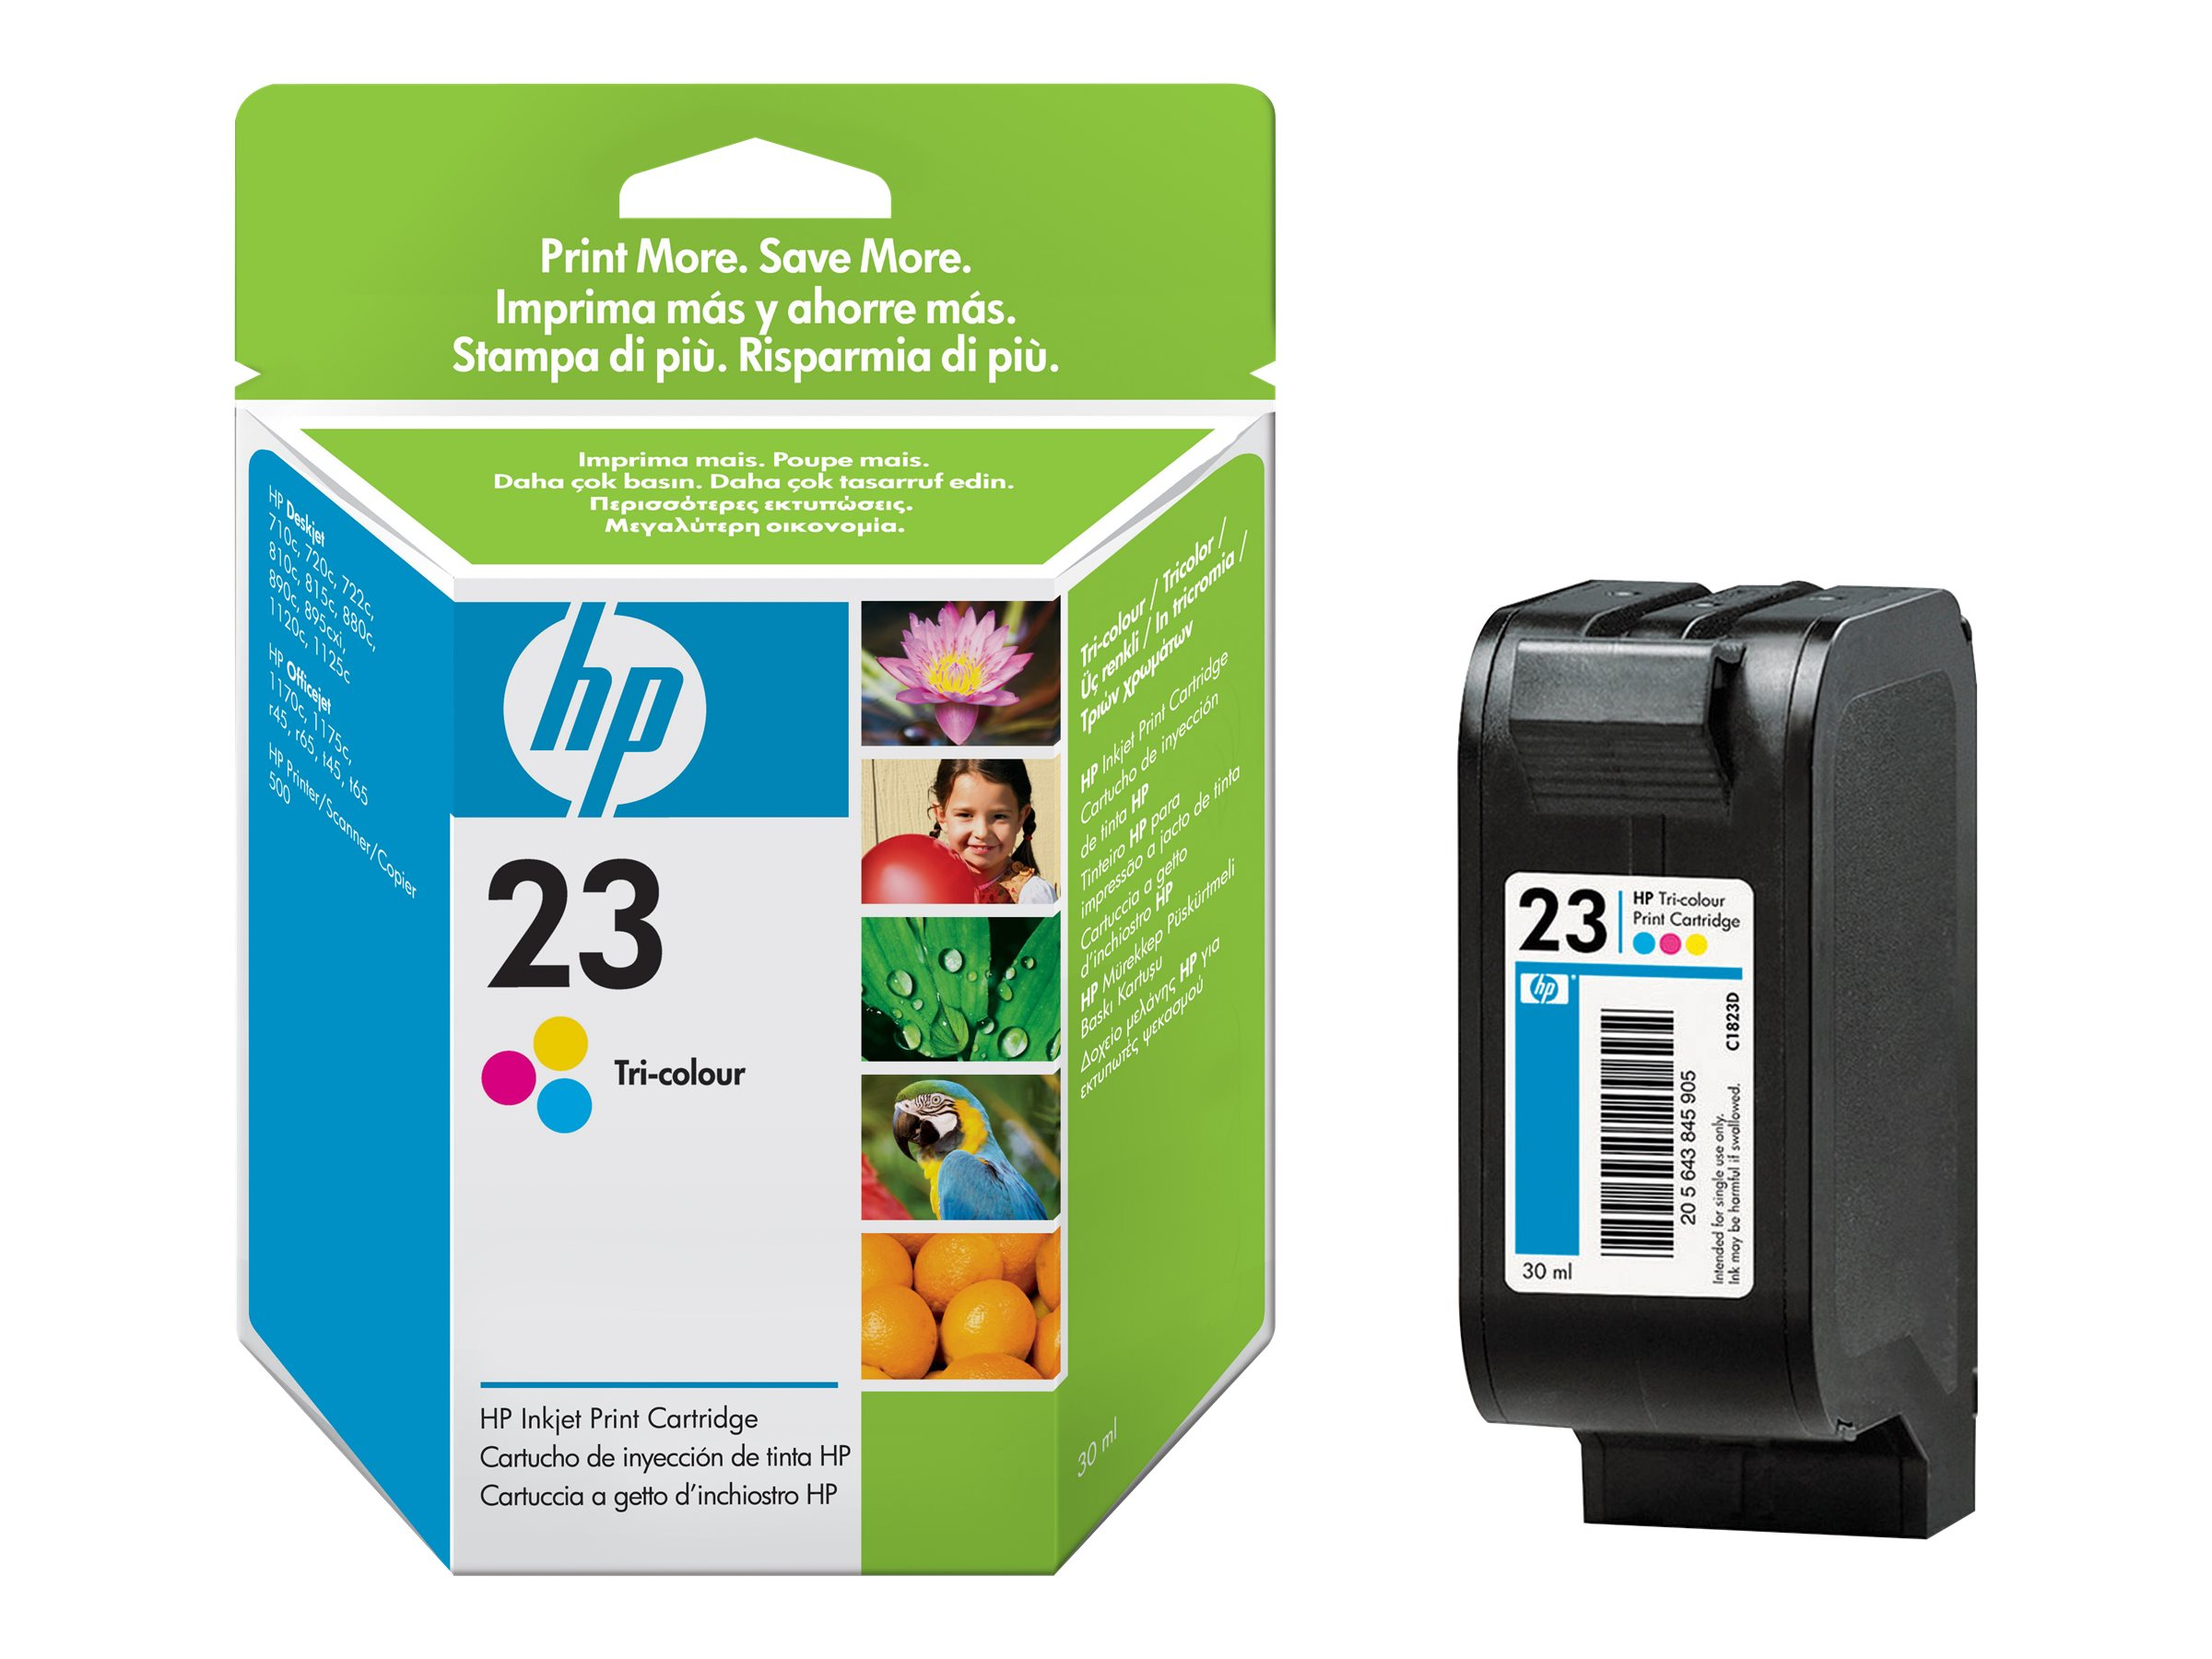 HP 23 - 30 ml - Farbe (Cyan, Magenta, Gelb) - Original - Tintenpatrone - für Color Copier 170, 260, 270; Officejet R40, R45, R65, R80, T45; Officejet Pro 11XX; psc 500